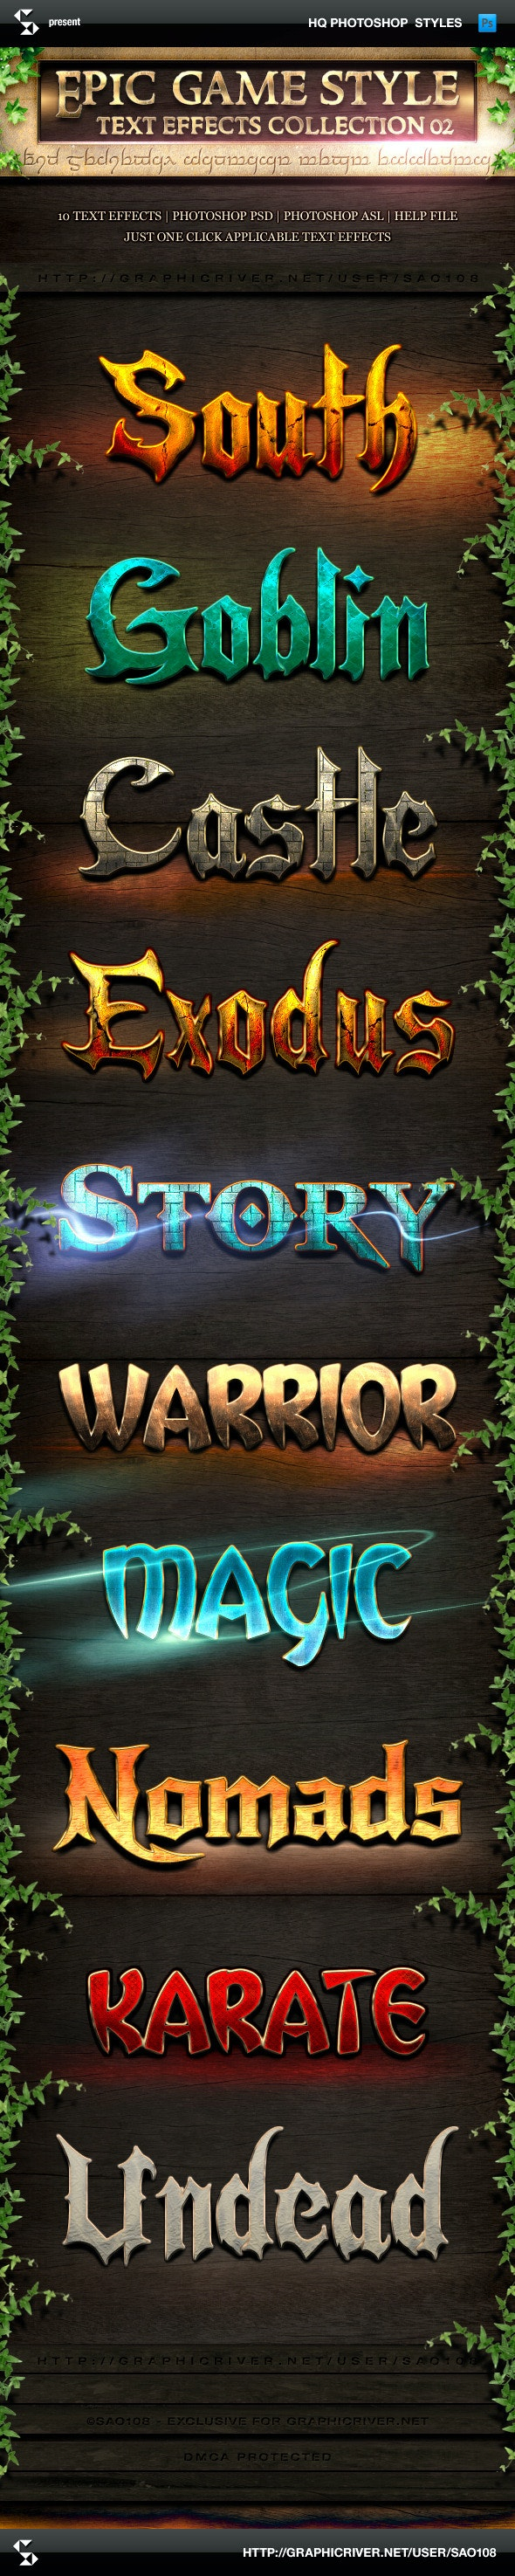 Epic Game Style Text Effects - Collection 2 - Text Effects Styles